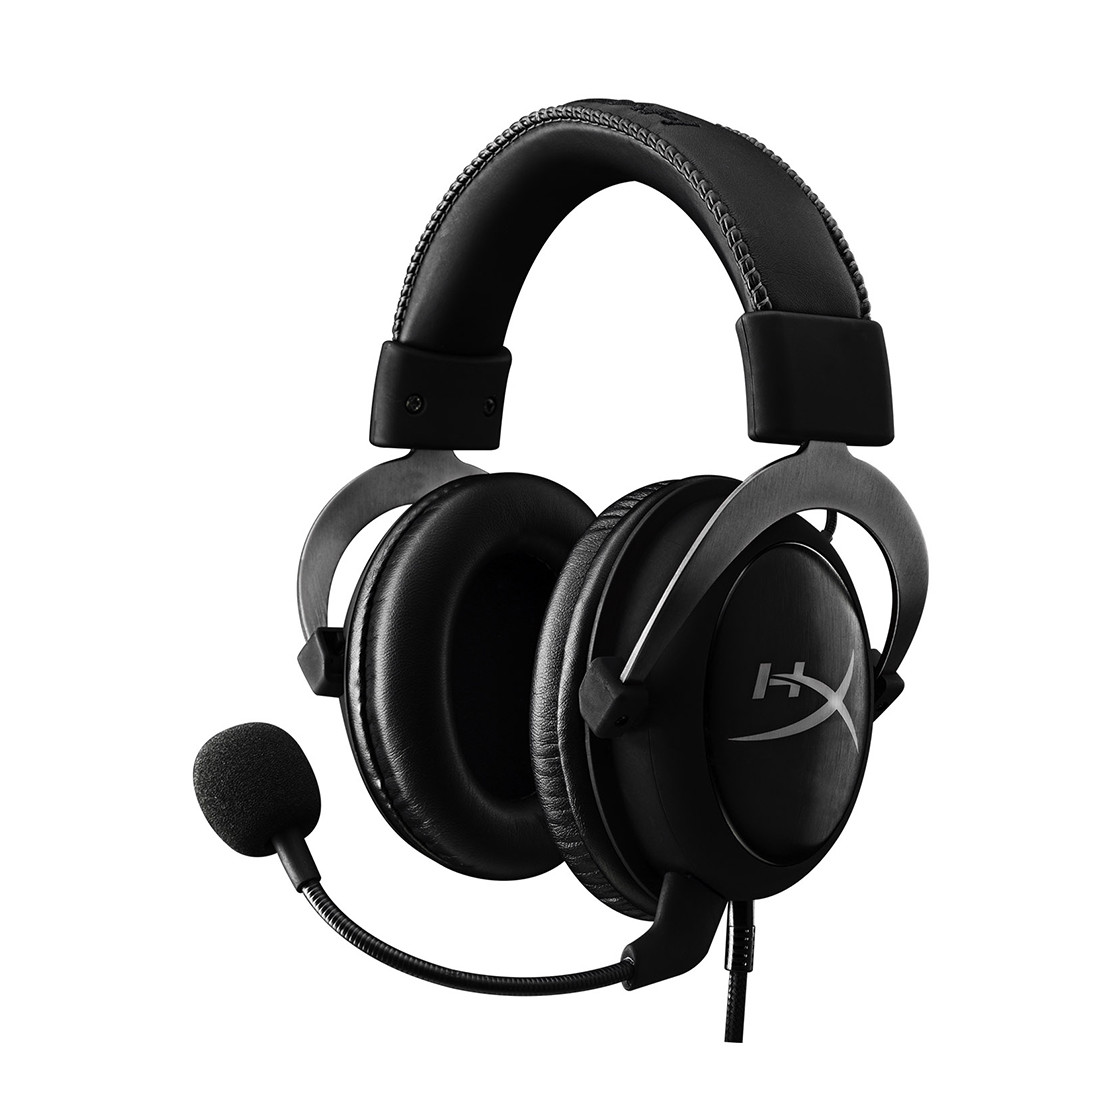 Гарнитура HyperX Cloud II - Pro Gaming Headset (Gun Metal)